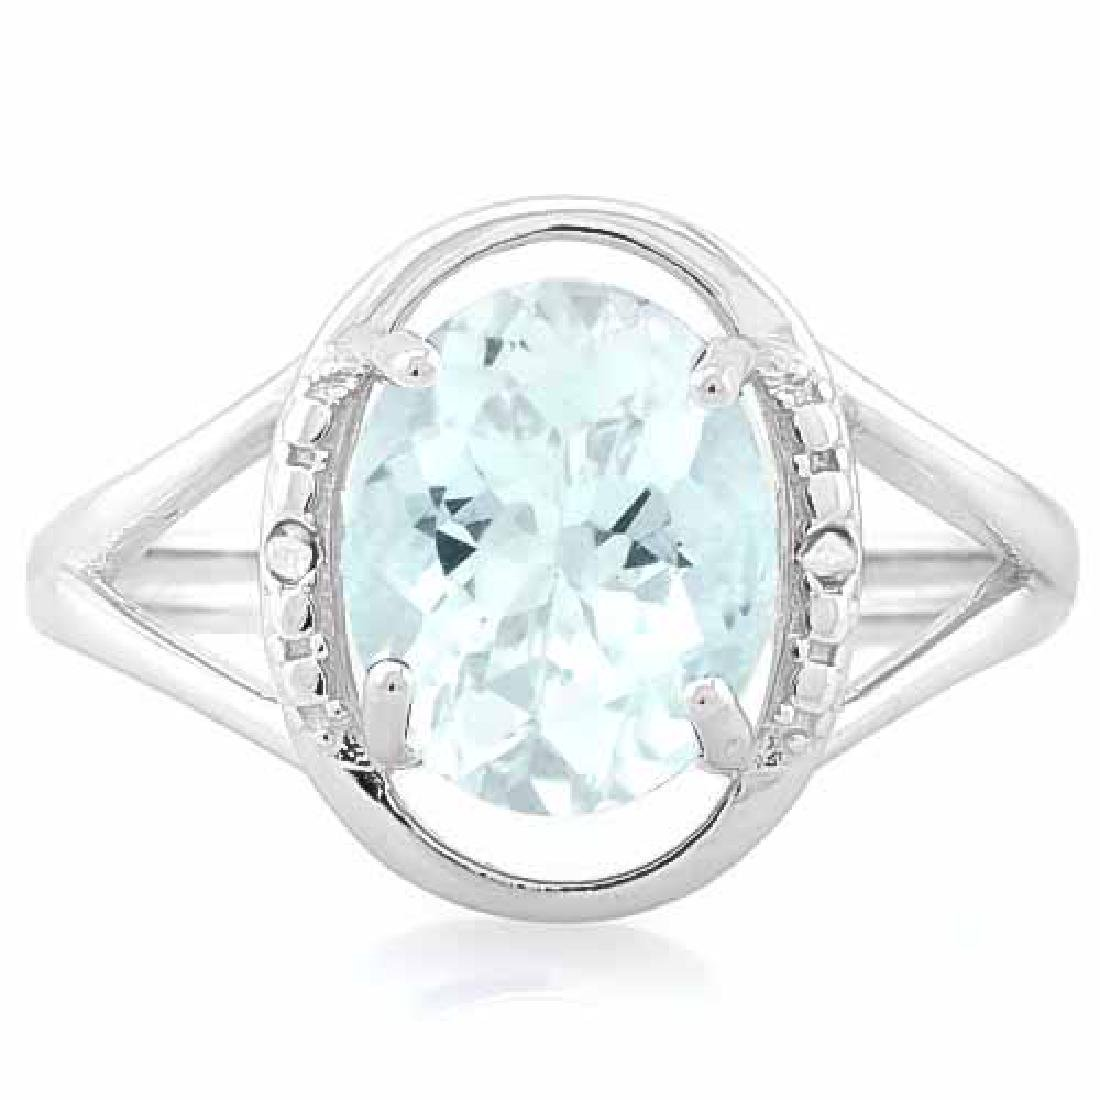 1 3/4 CARAT AQUAMARINE & DIAMOND 925 STERLING SILVER RI